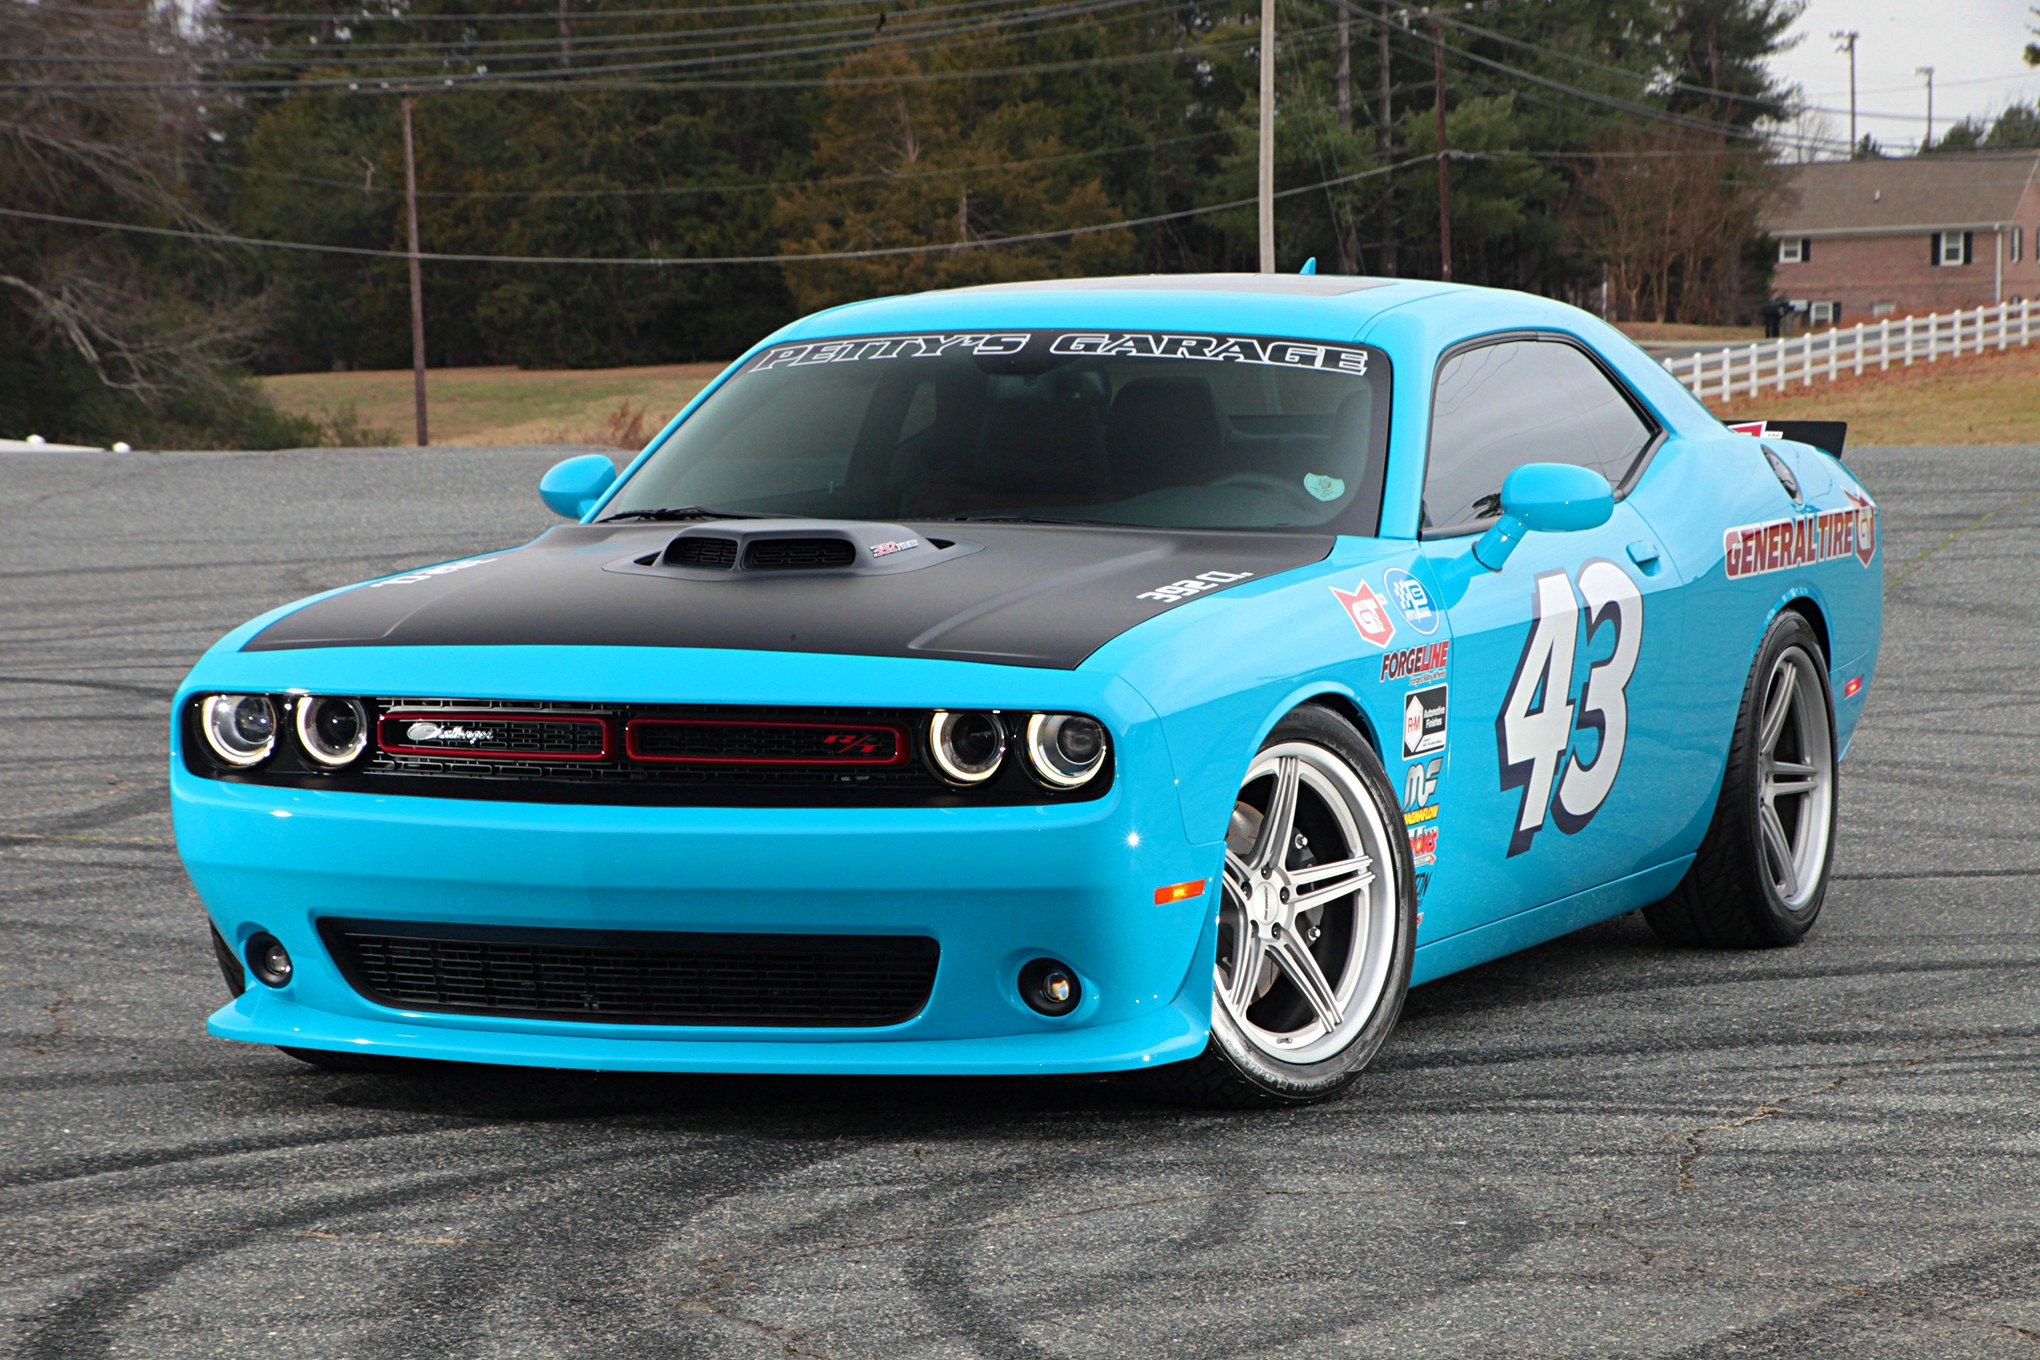 Baby Blue Dodge Challenger Looking Good with Custom Halo Headlights